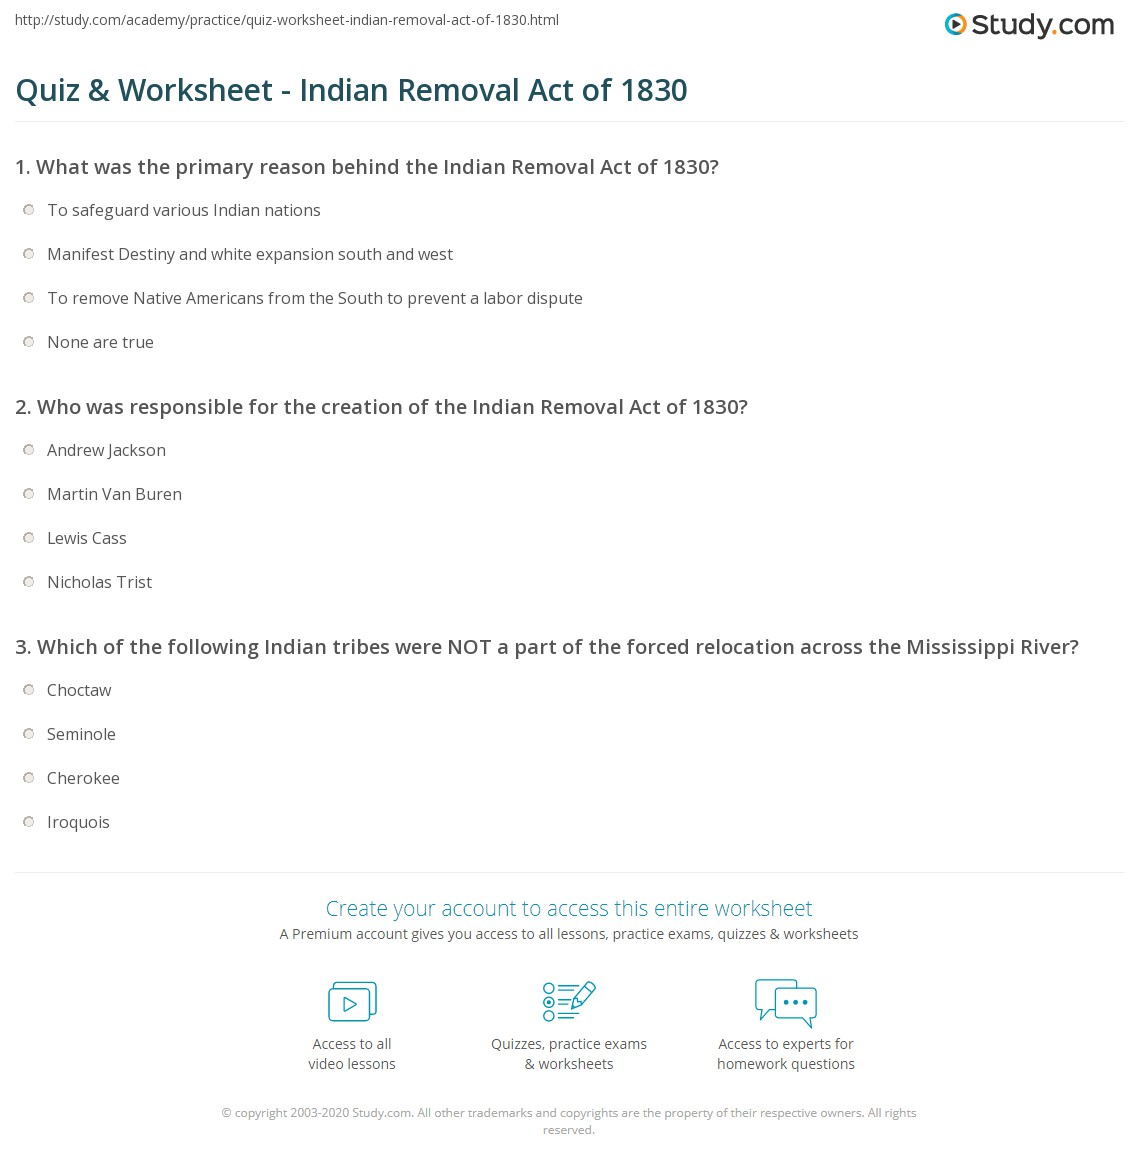 Quiz & Worksheet - Indian Removal Act of 1830 | Study.com